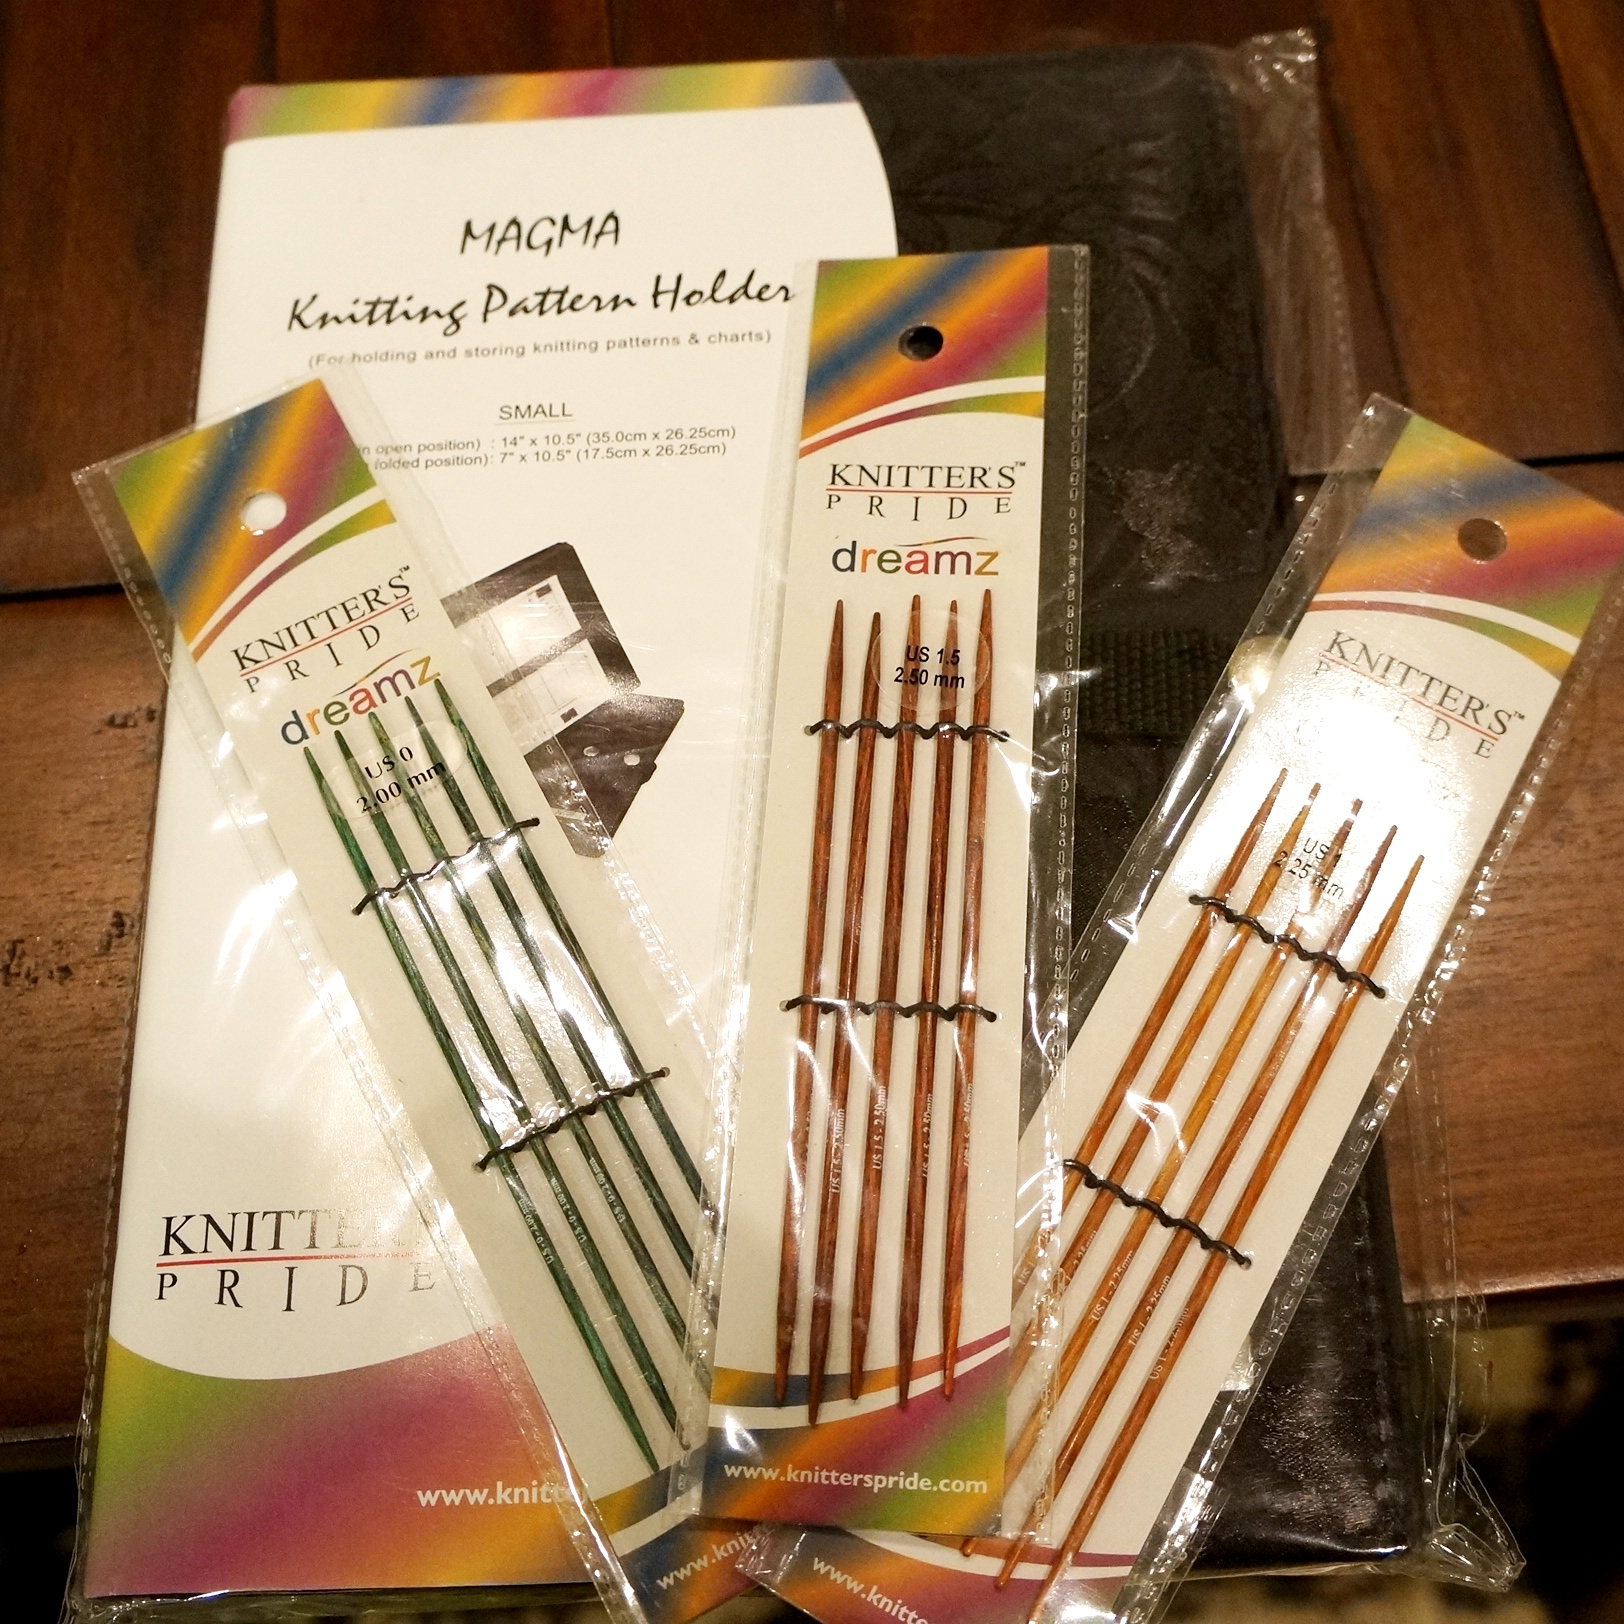 3 sets of Knitter's Pride Dreamz DPNs in Szs 0, 1, and 1.5; and Knitter's Pride Magma Pattern Holder